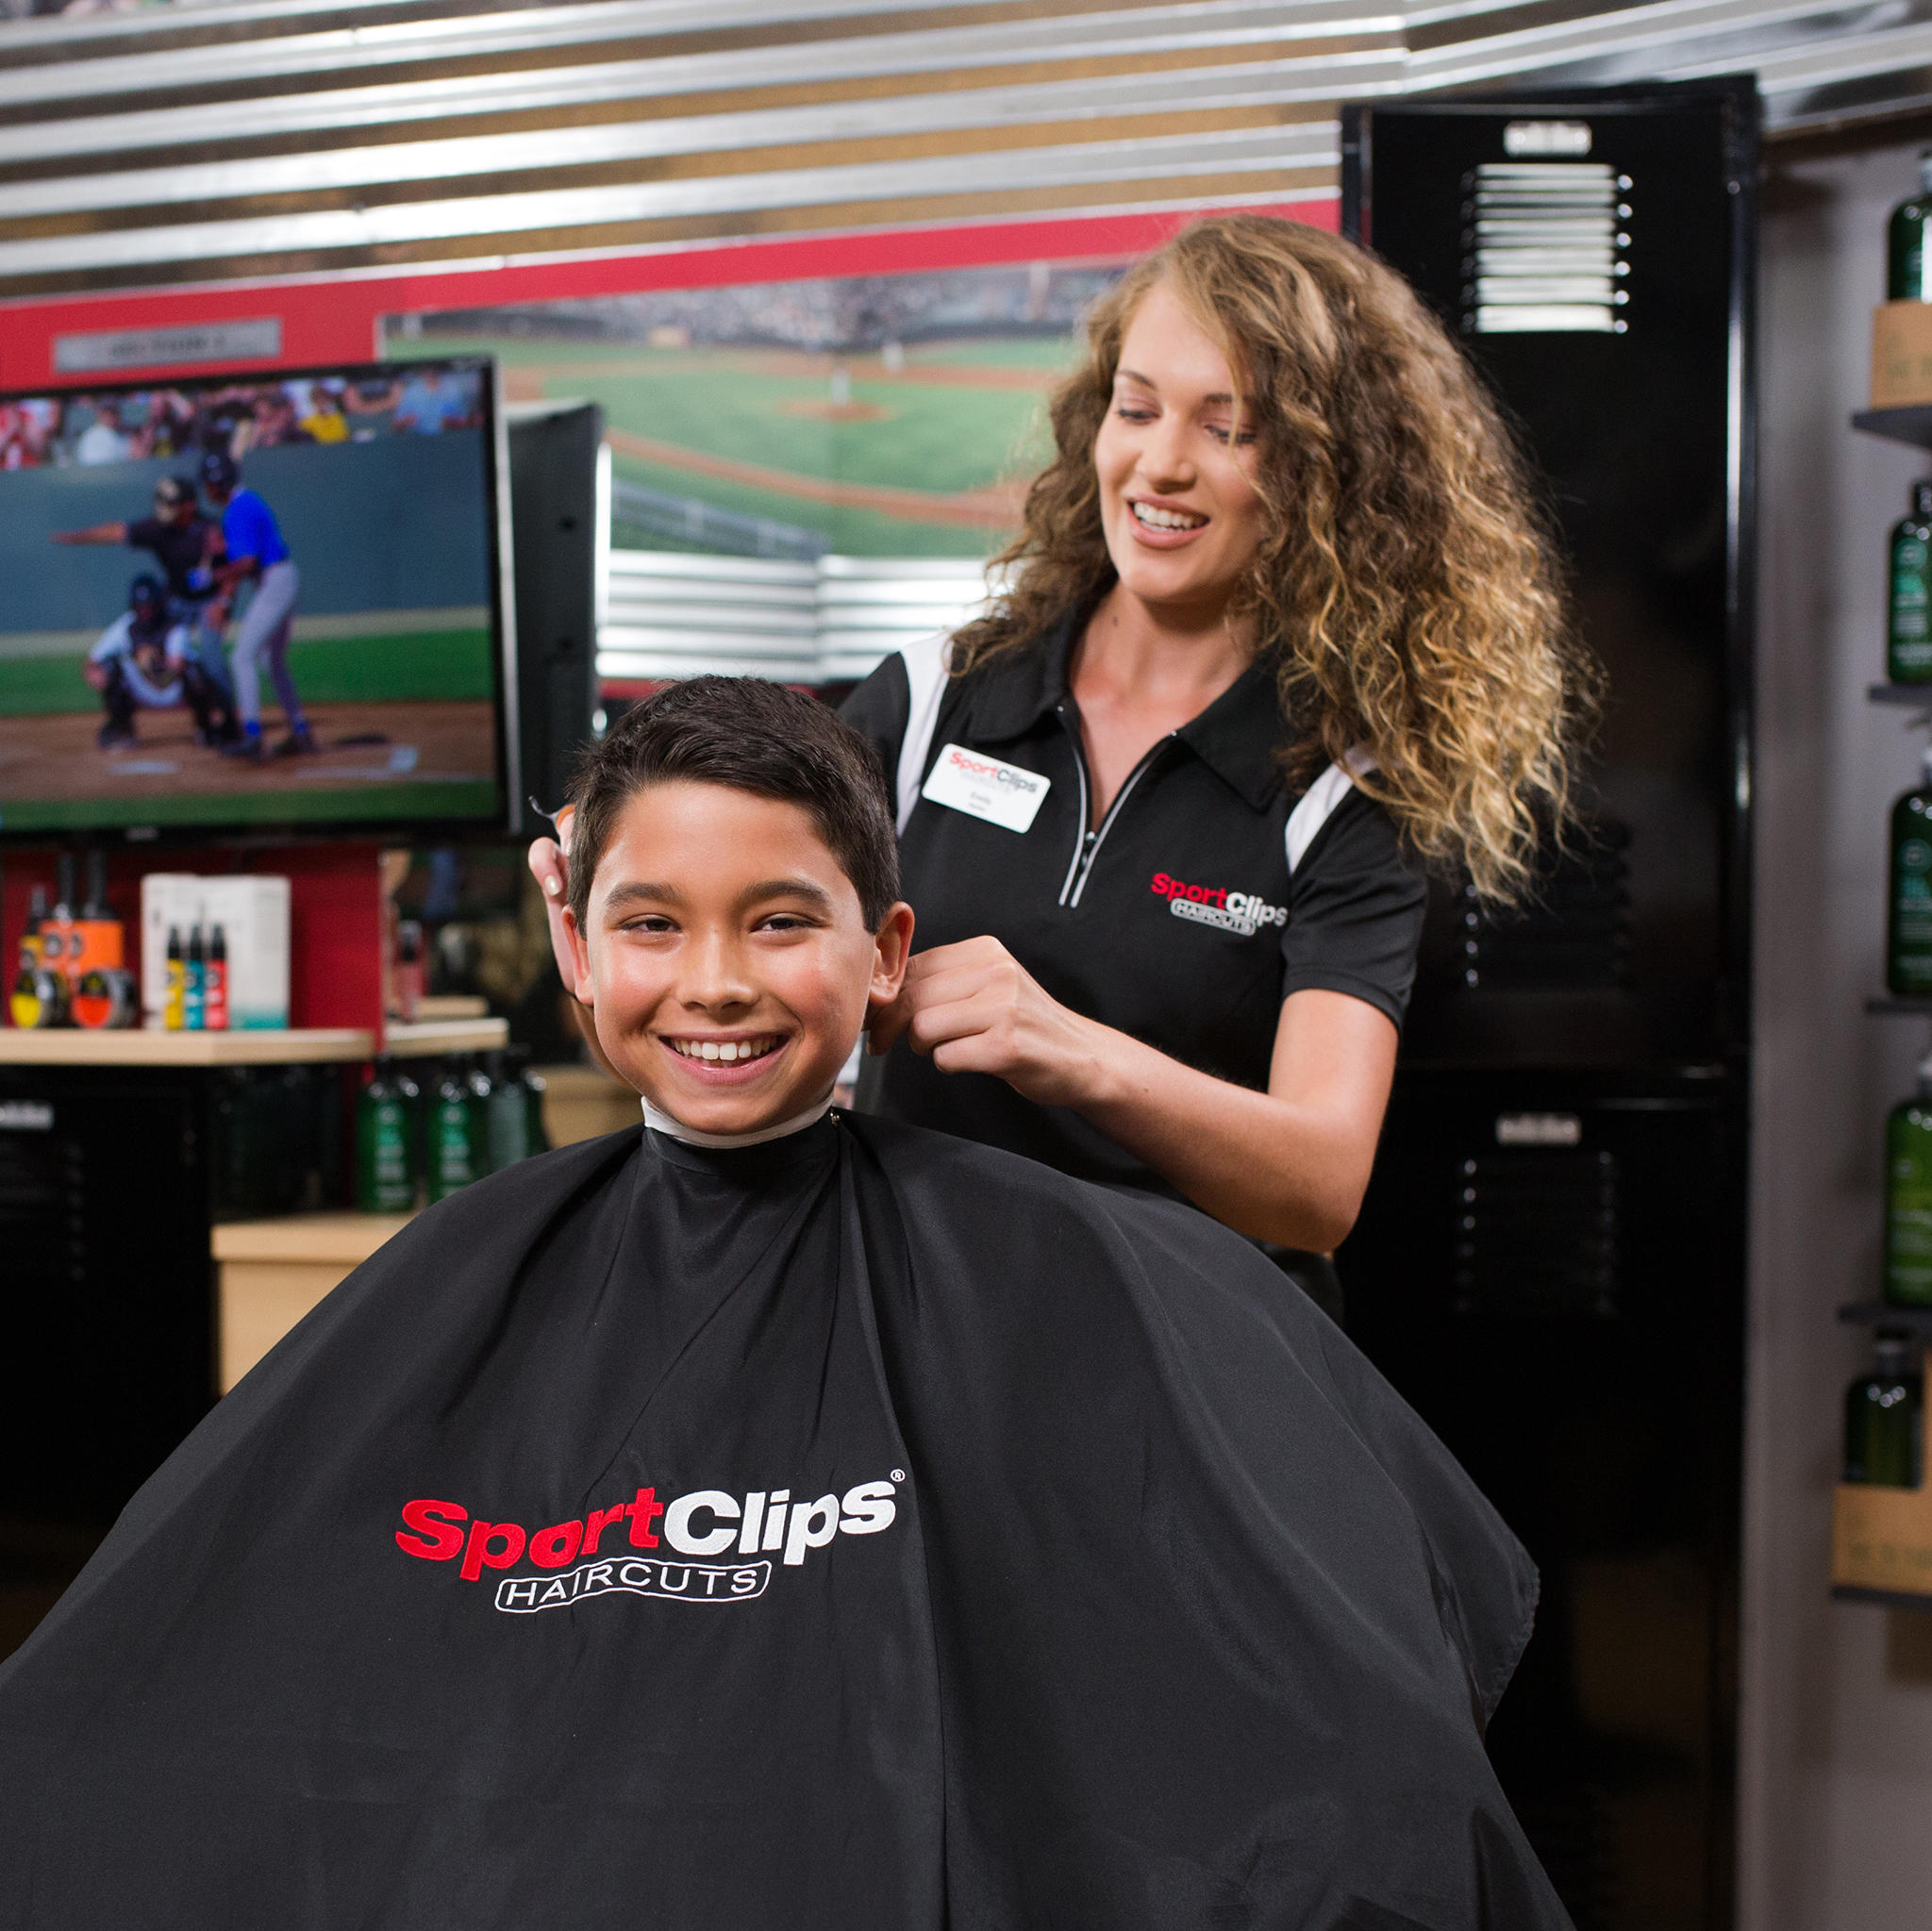 Sport Clips Haircuts of Toms River image 3